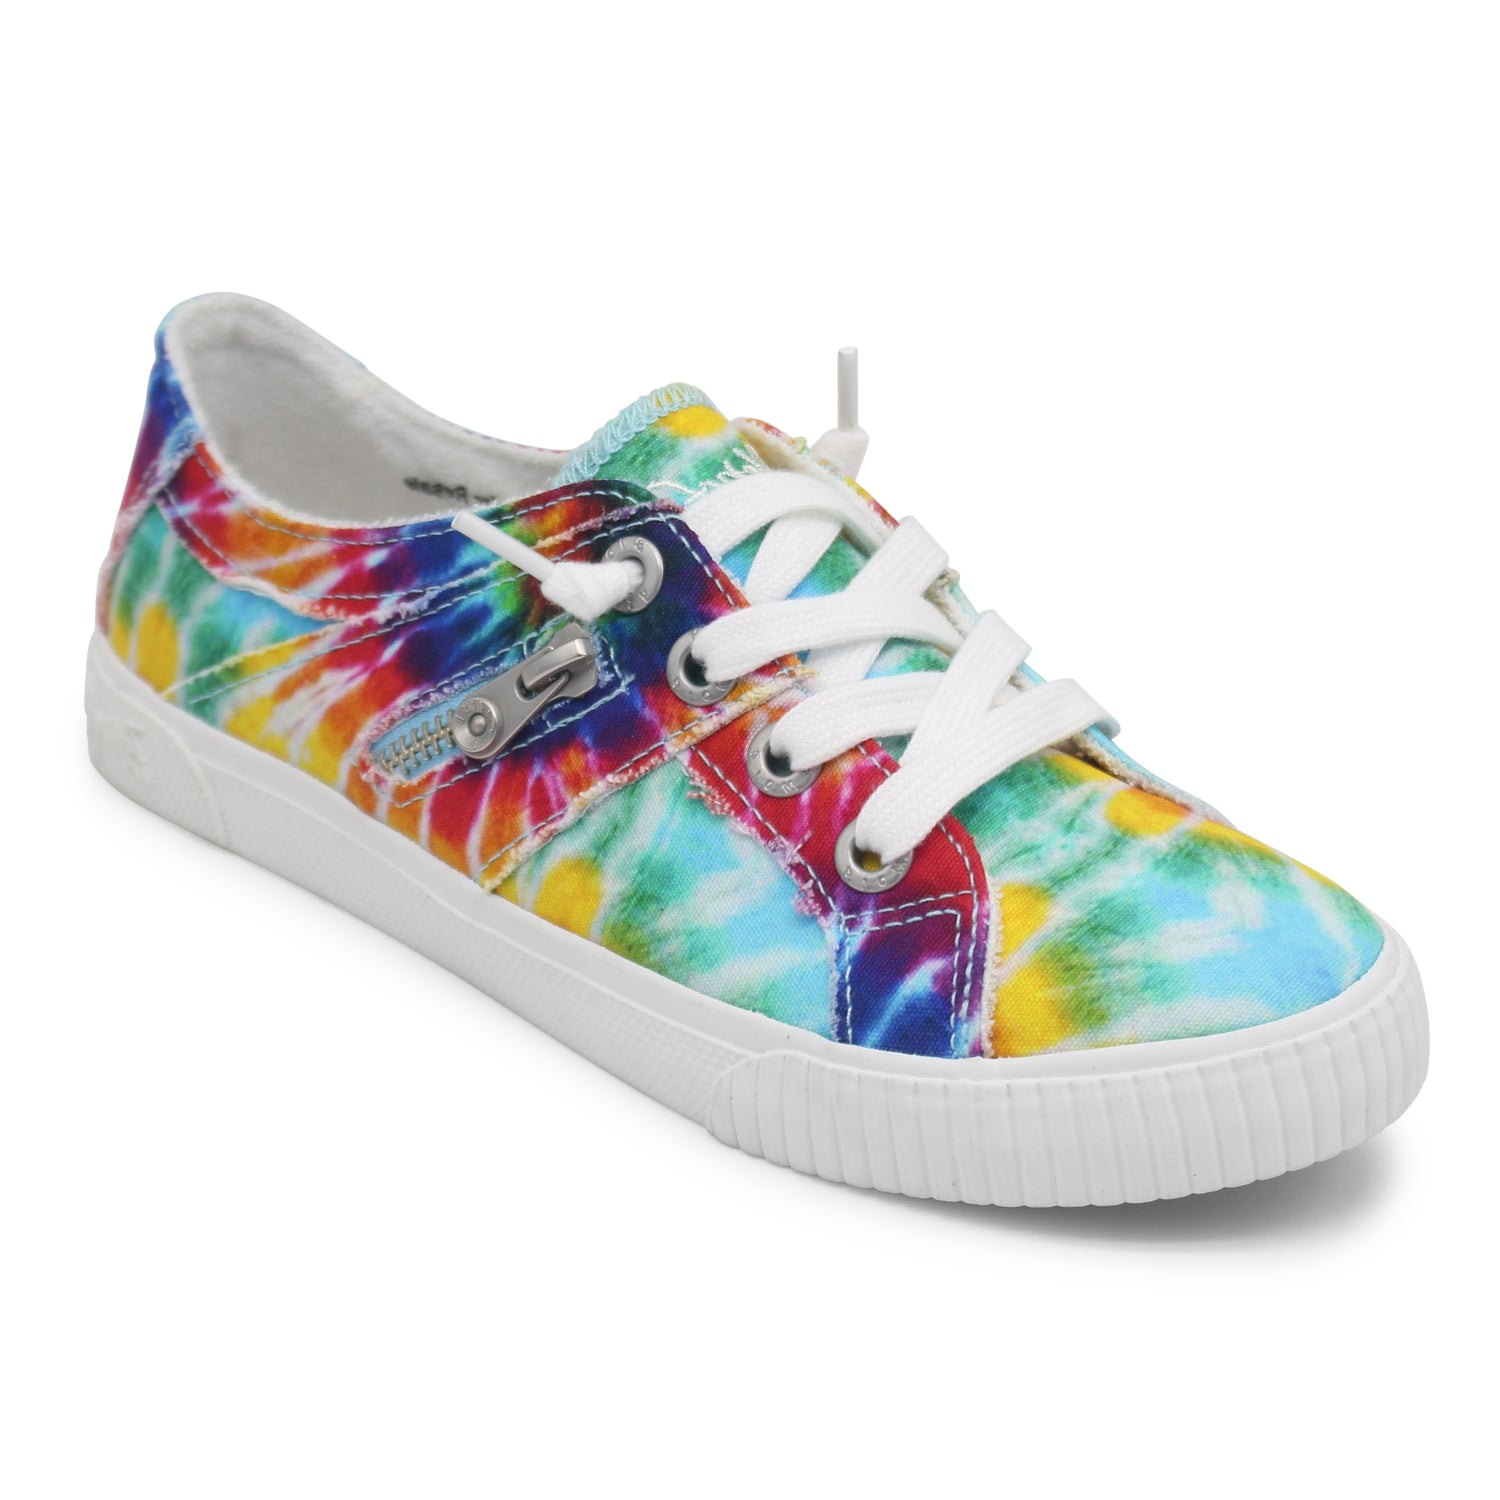 'Blowfish Malibu' Women's Fruit Slip On - Rainbow Tiedye